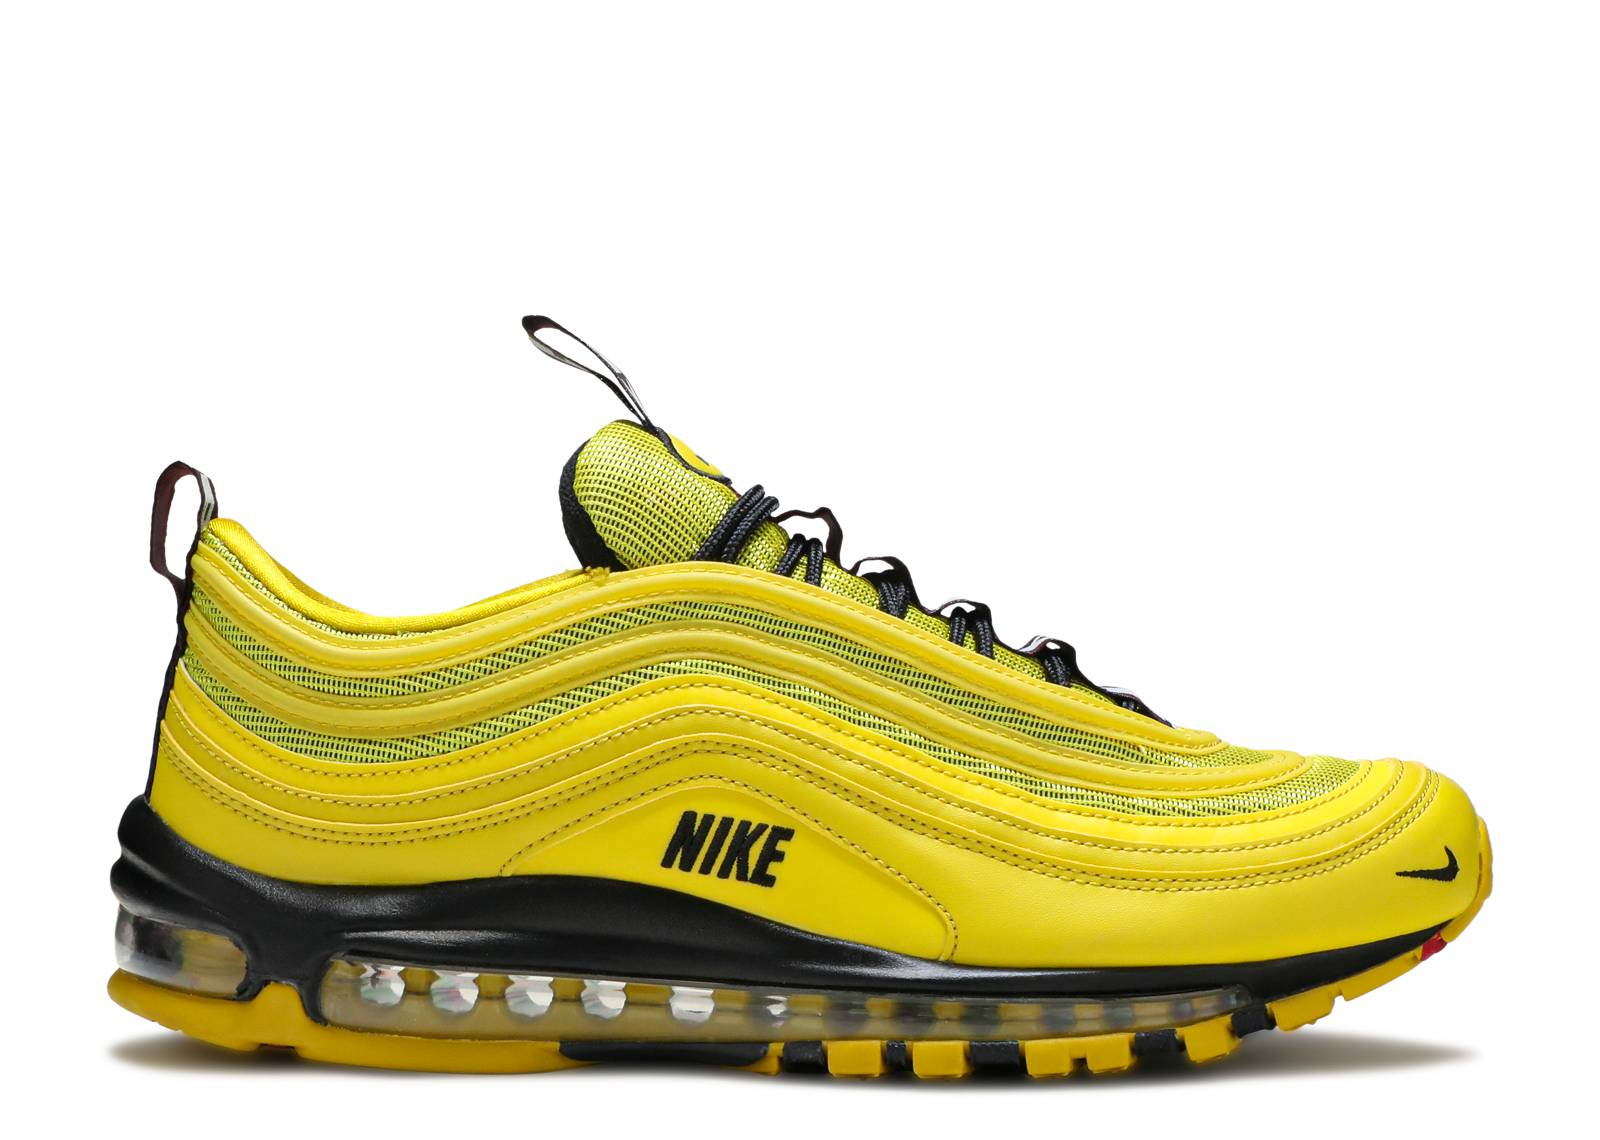 best sneakers b1b45 2e2f0 Nike Air Max 97 - Nike - av8368 700 - bright citron  black -black ...